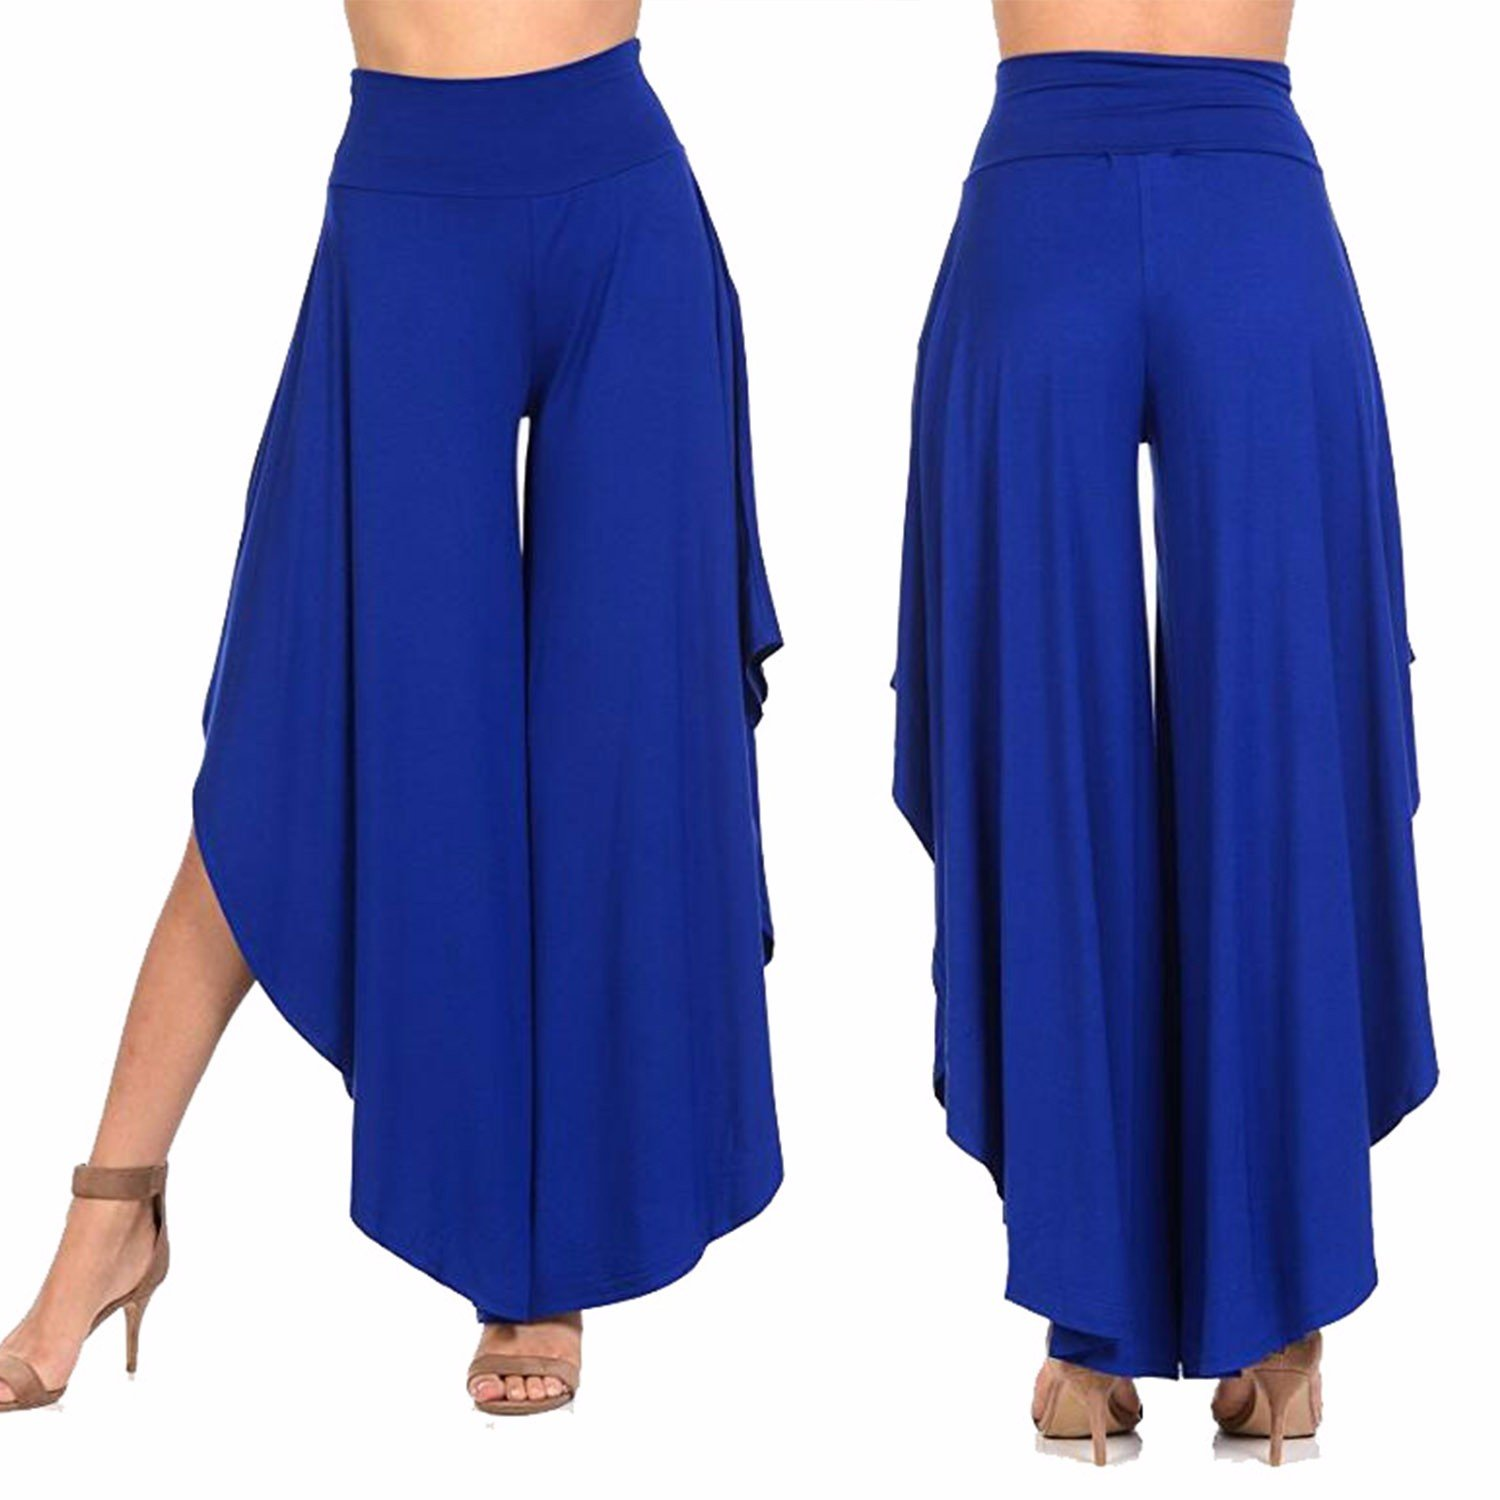 COLO Womens Ruffled Wide Legs Palazzo Pants High Waist Comfy Casual Lounge Pants for Summer #1 Blue (M)